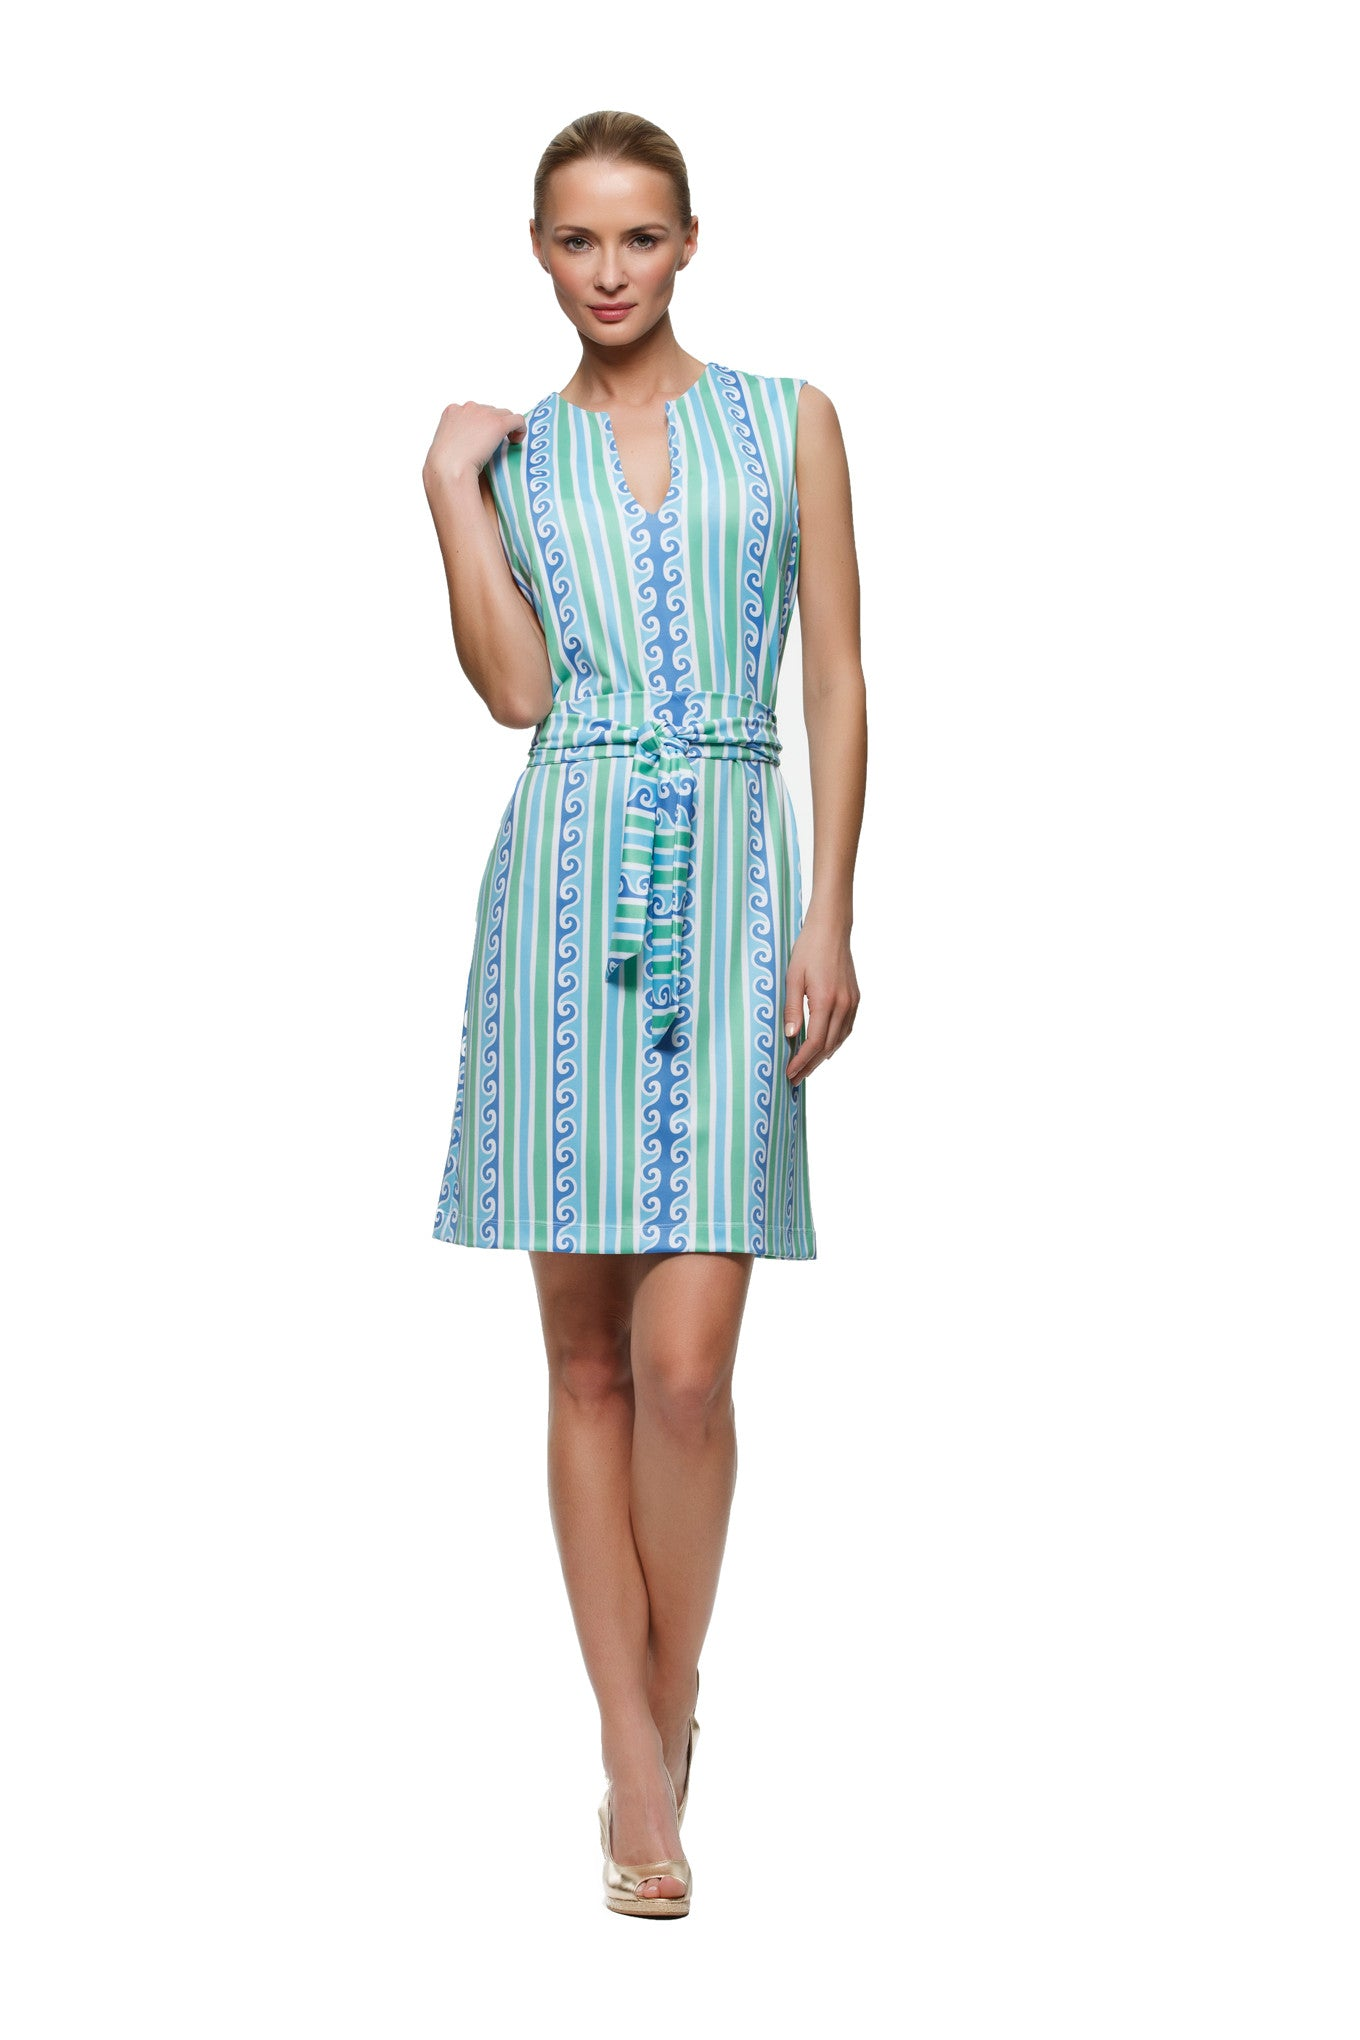 Darcy womens sleeveless v-neck dress with matching belt in blue and green scroll by Rulon Reed front view